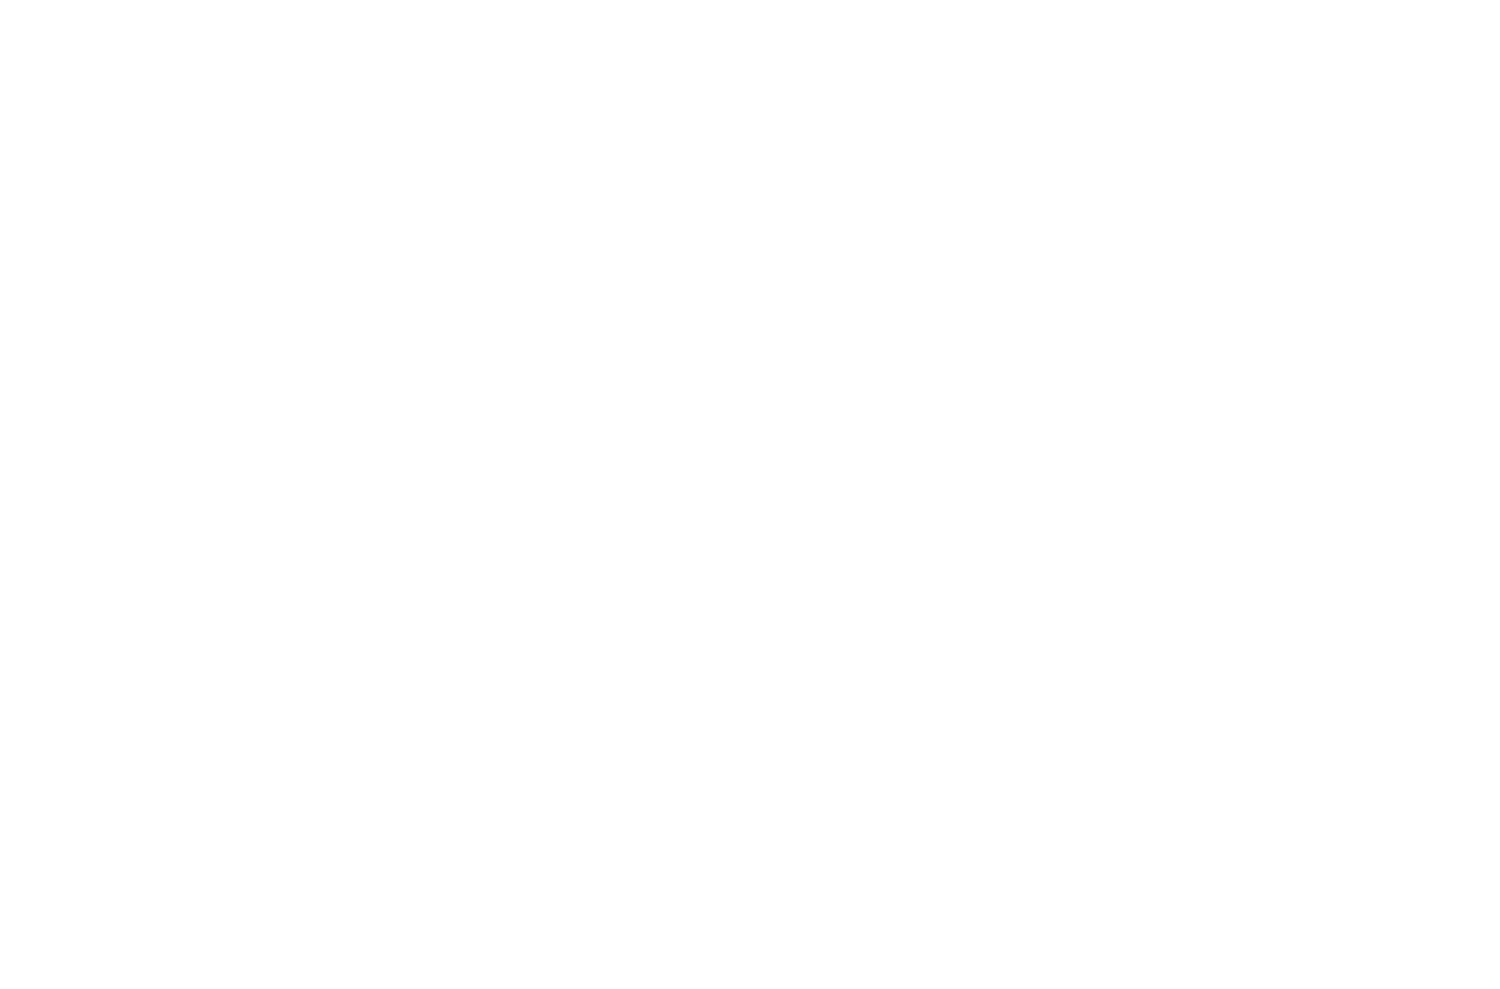 AGORA IMAGE - Animation and VFX, 3D And 2D Art Outsourcing For Games And Films